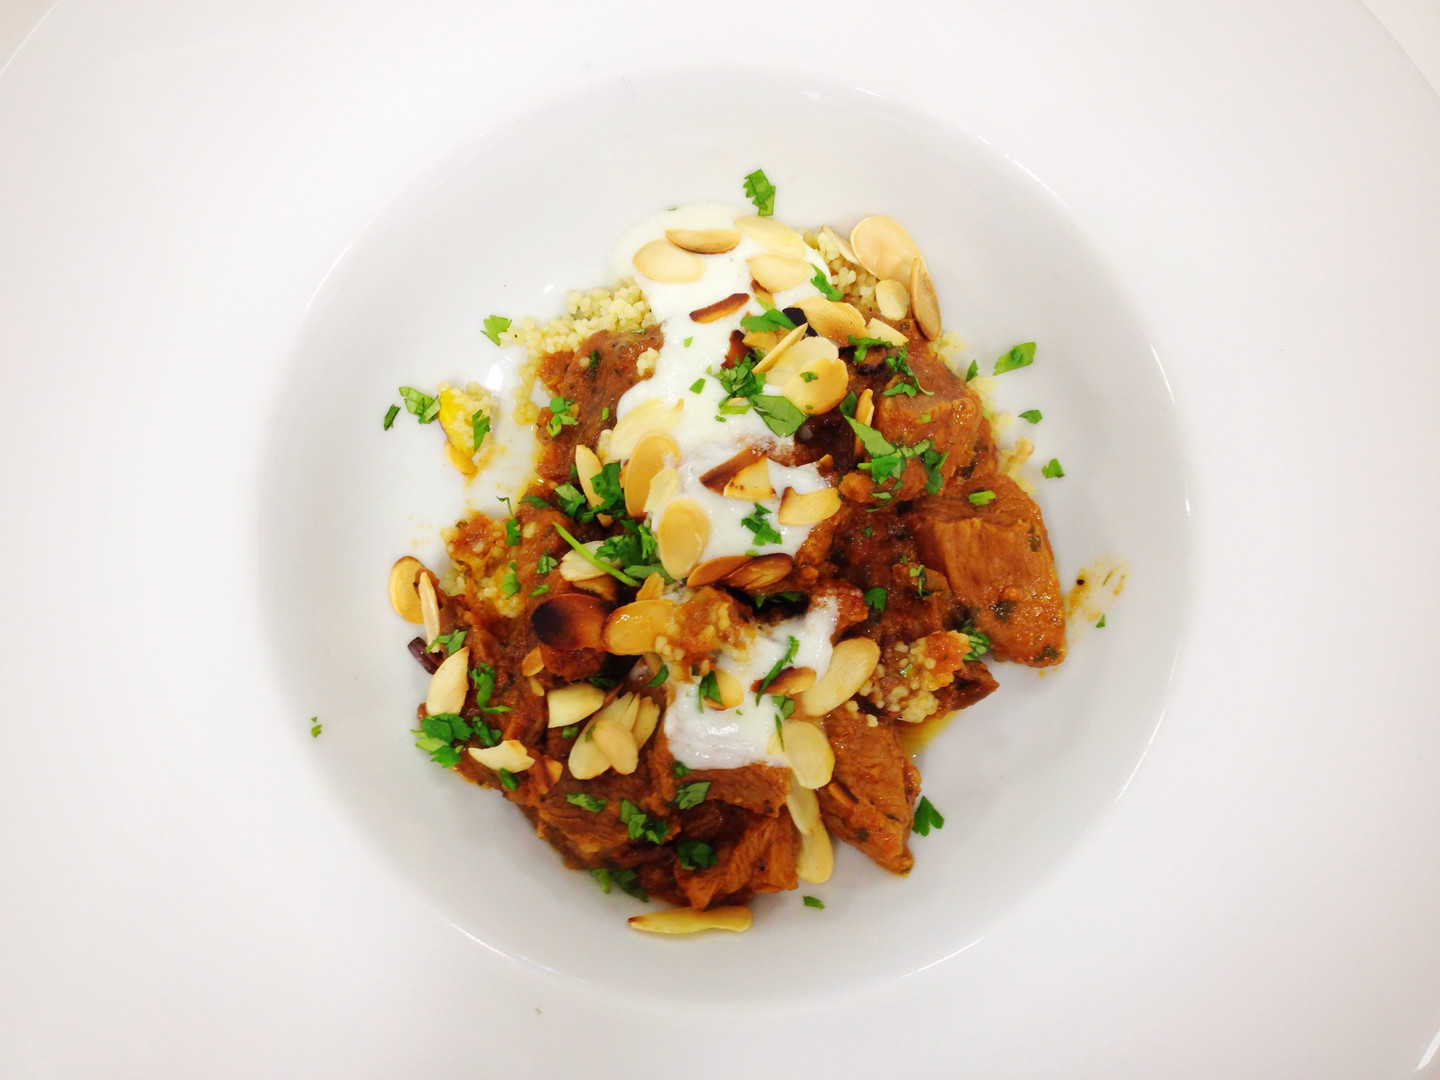 Braised Lamb with Dates and Almonds